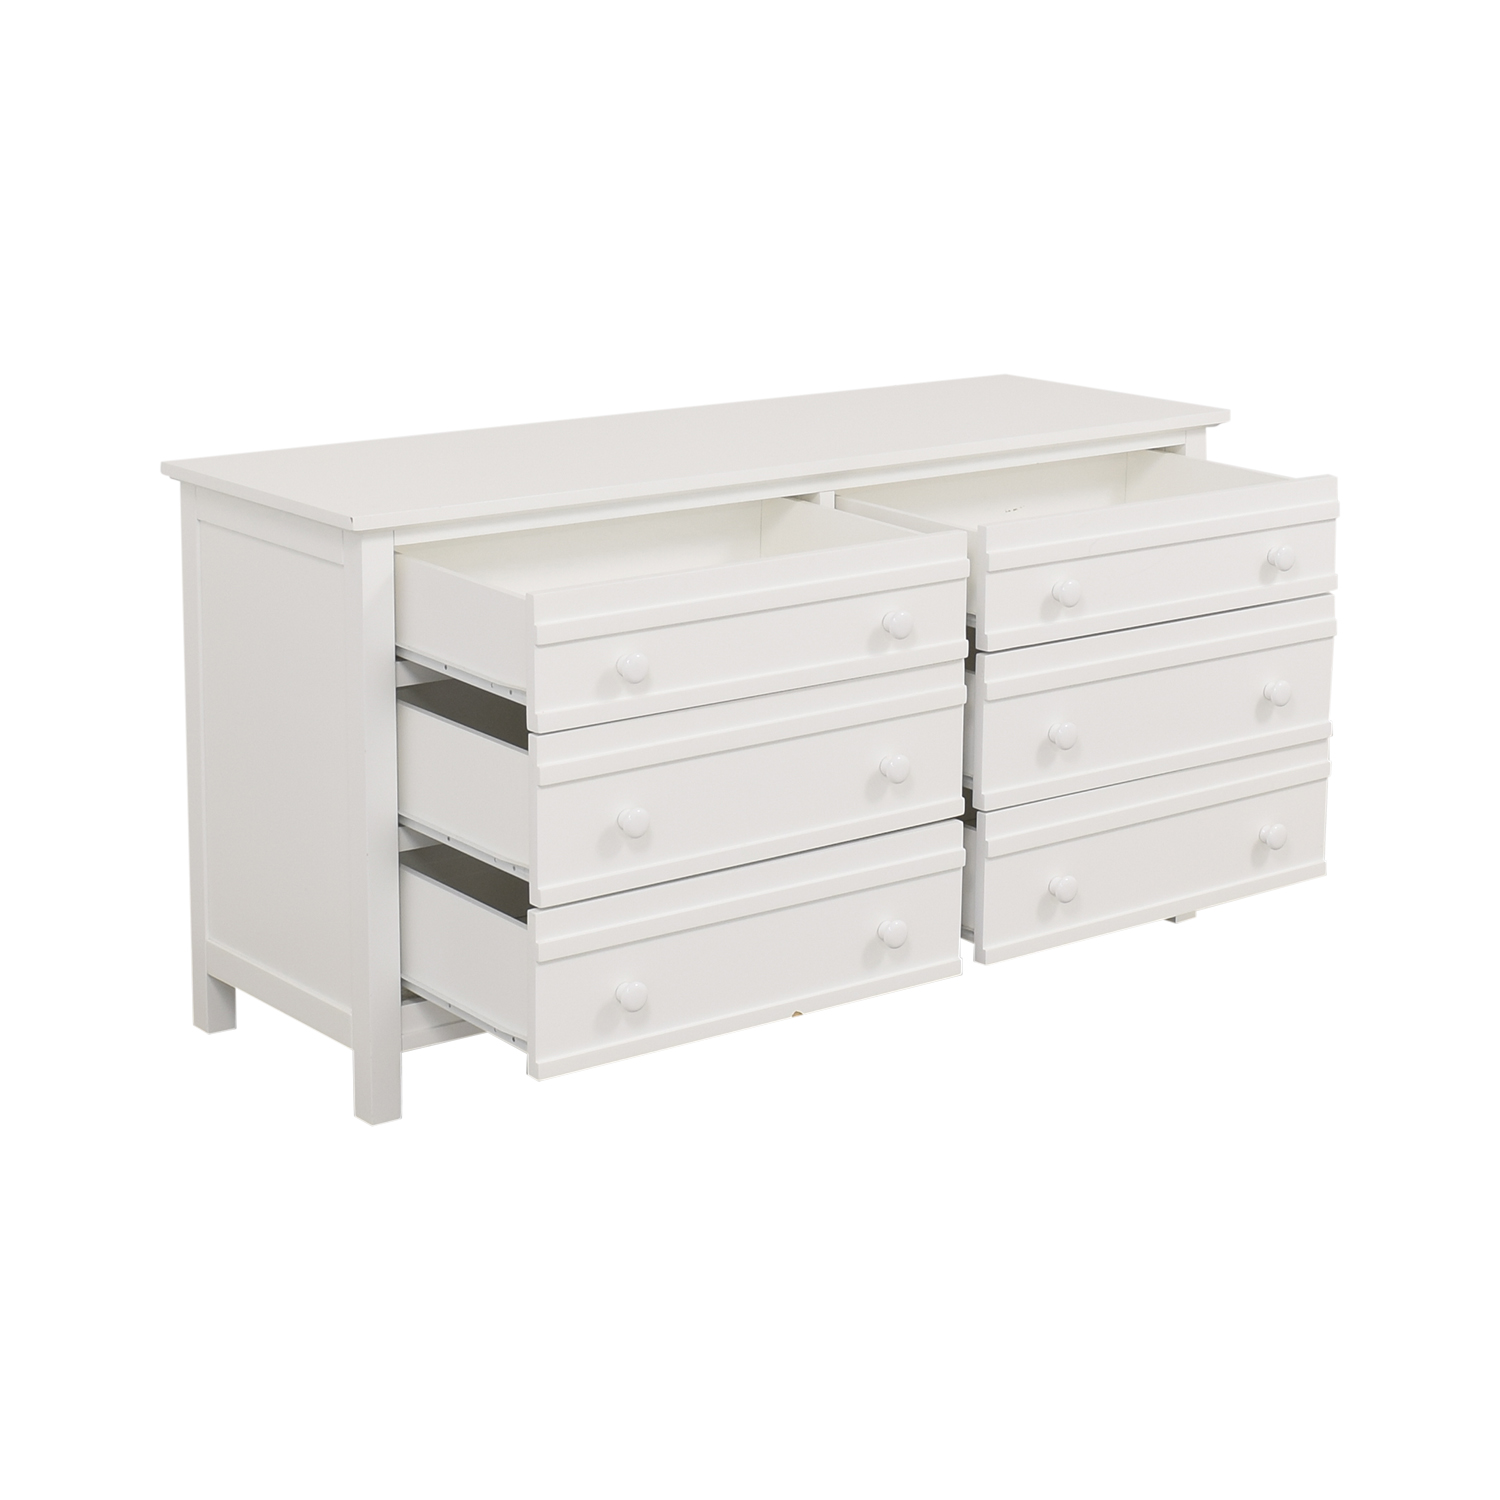 shop Crate & Barrel Crate & Barrel Brighton Six Drawer Dresser online